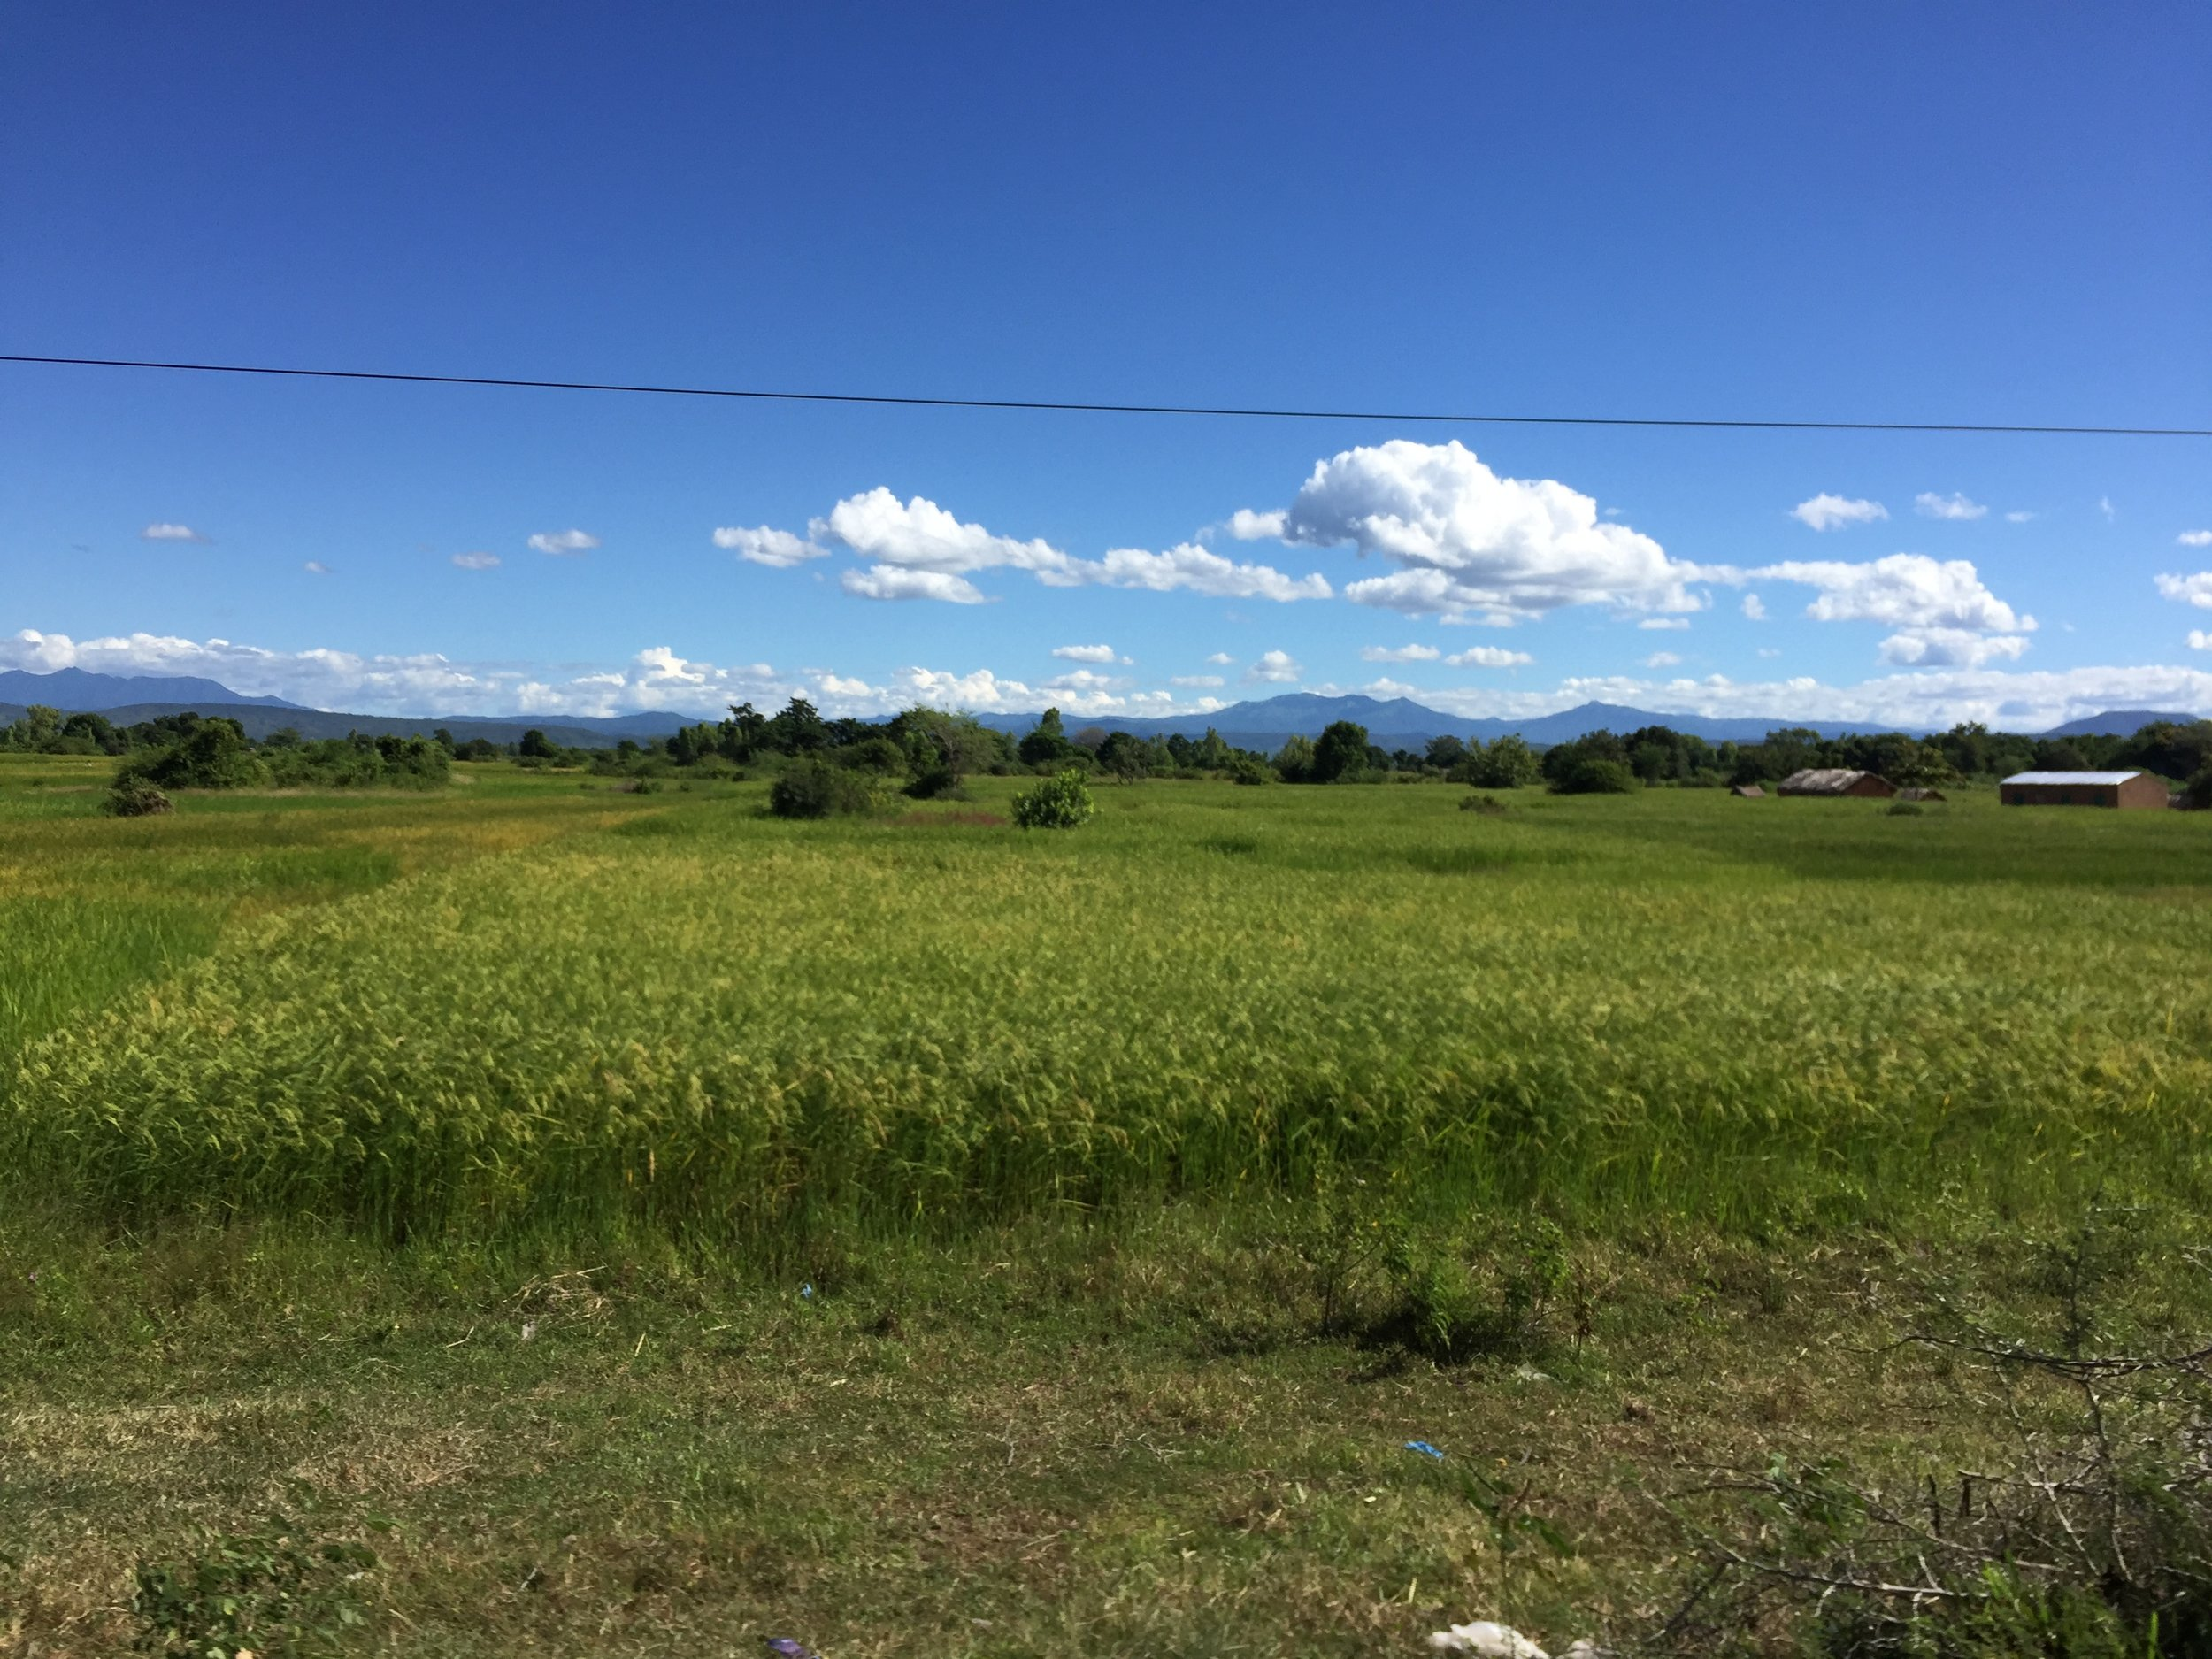 The rolling hills and fields of Malawi are a beautiful bright green - untouched by anyone but farmers.